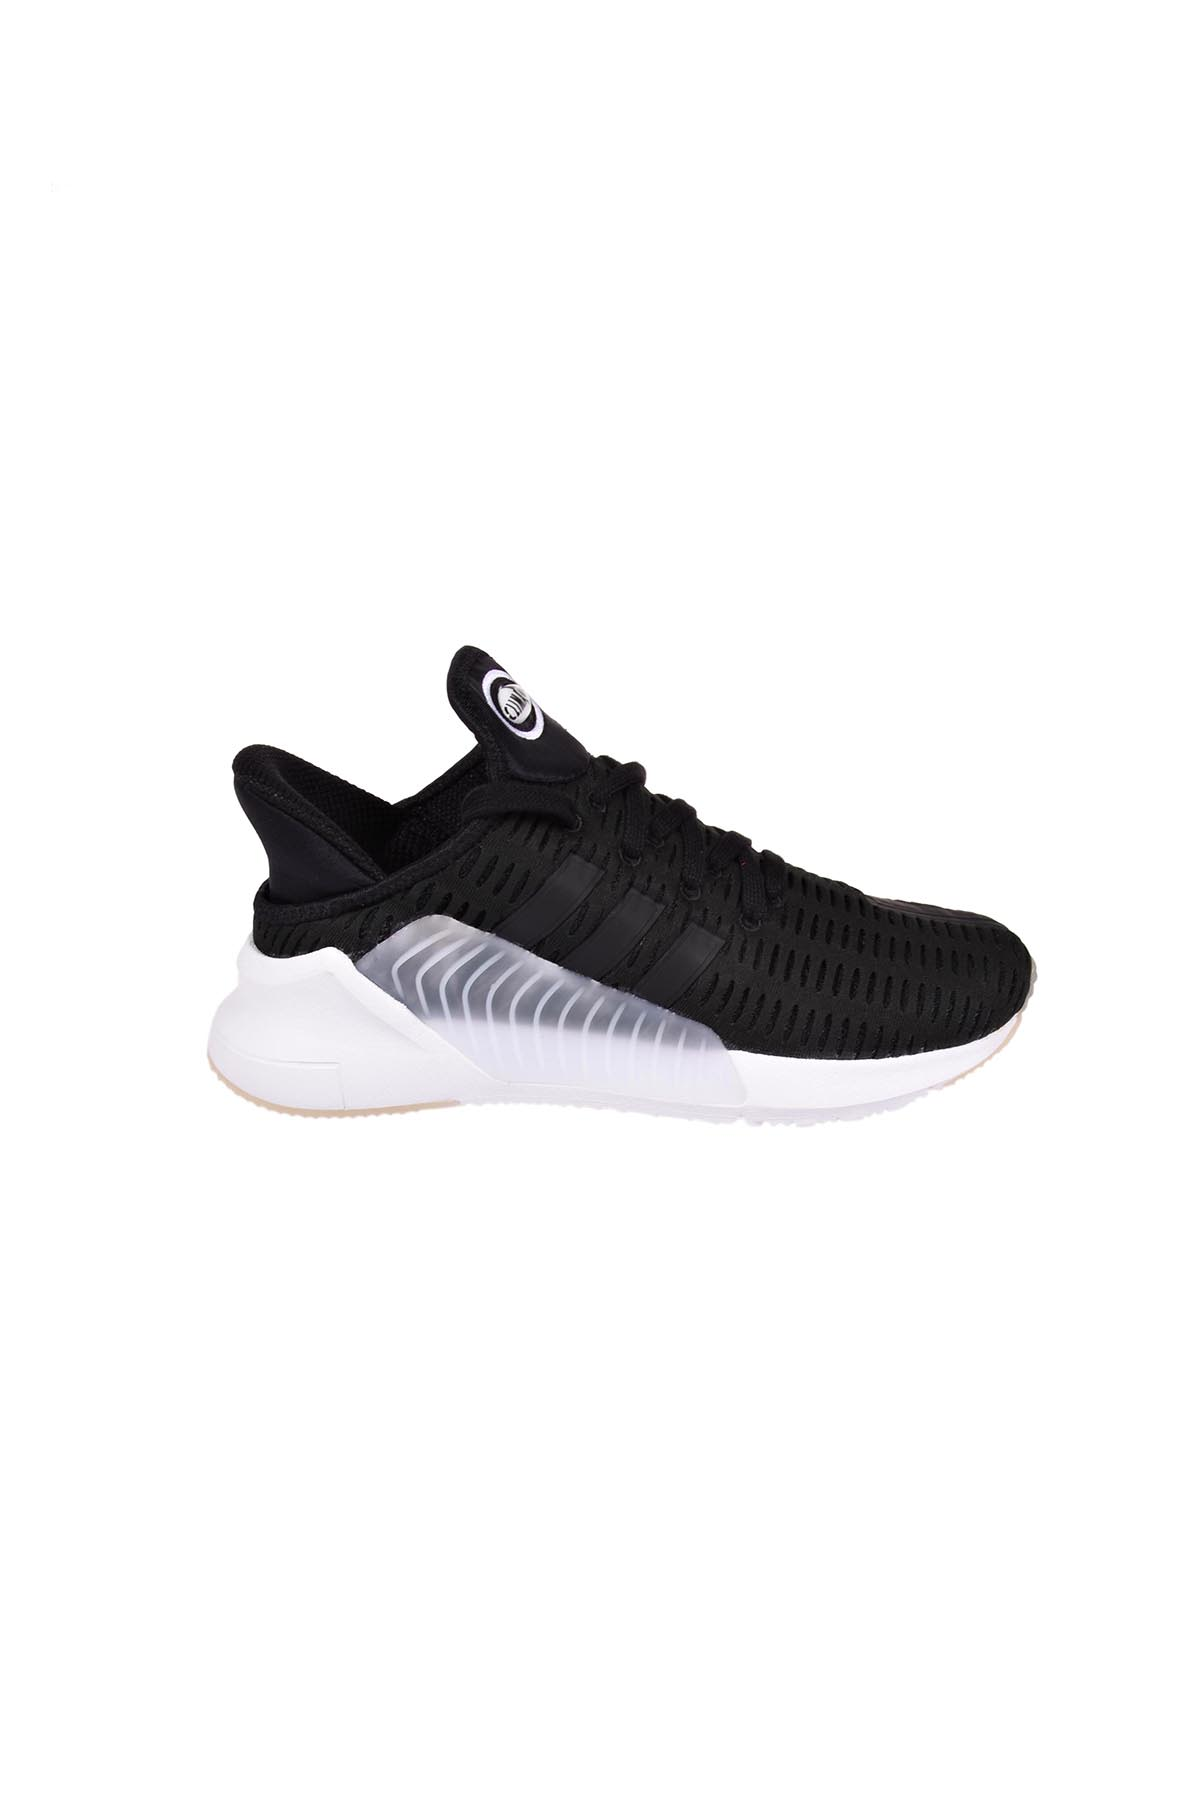 Adidas Climacool Sneakers